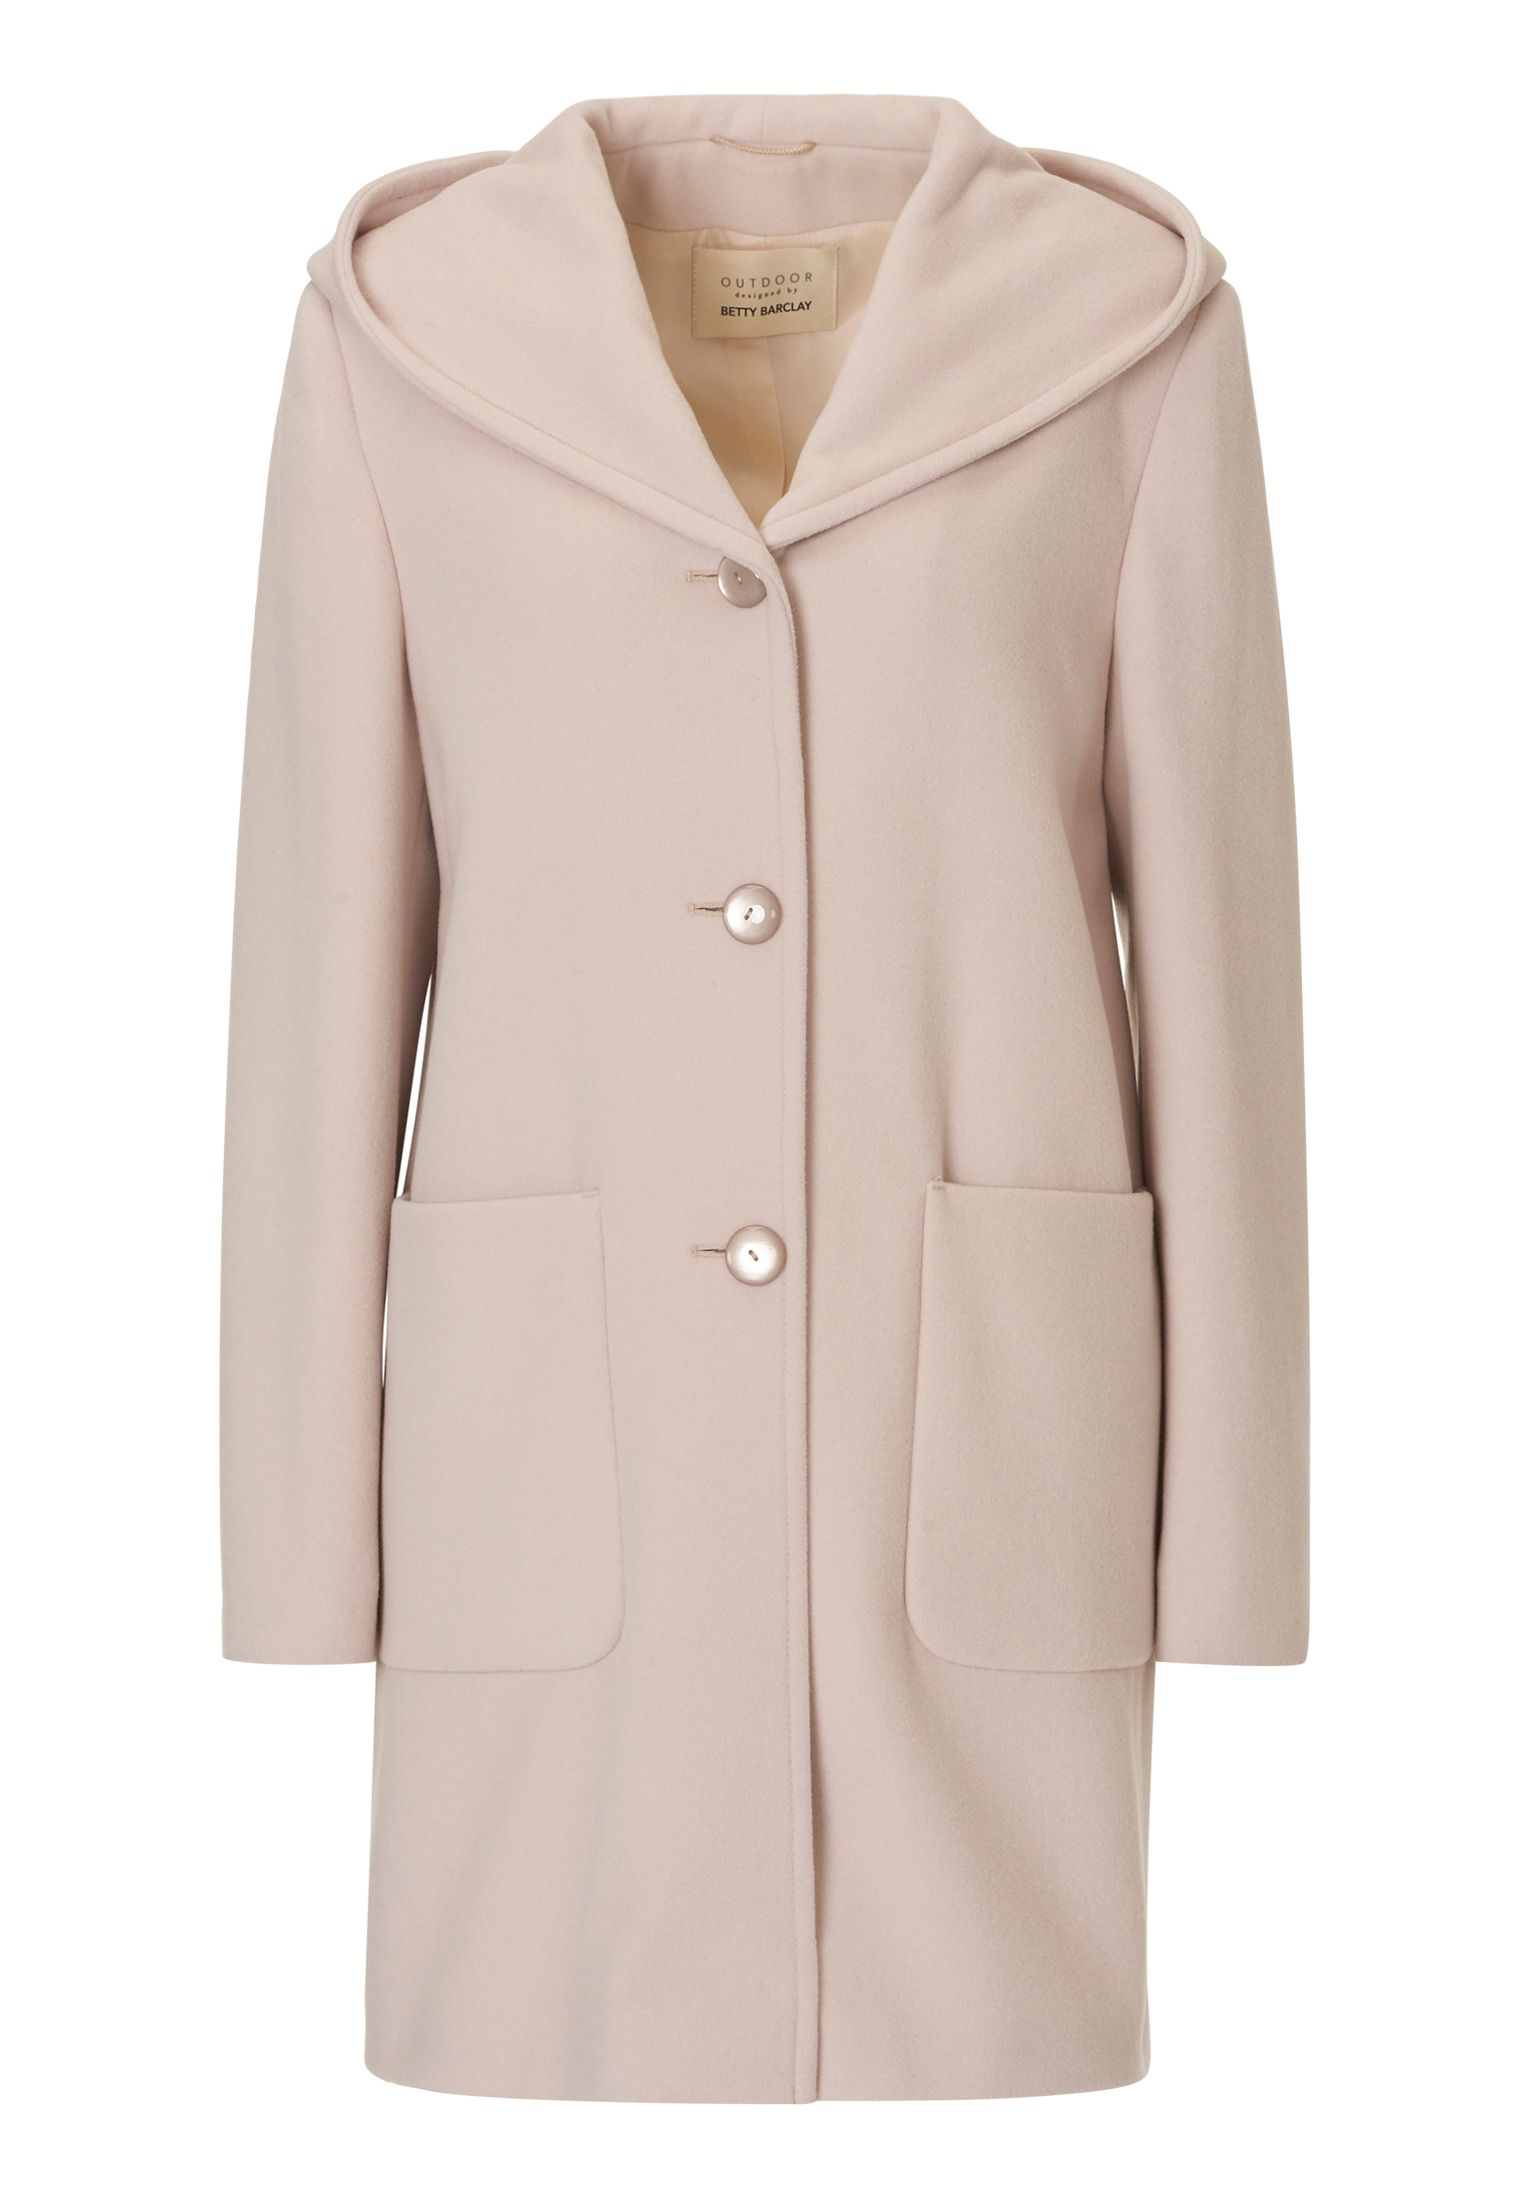 Betty Barclay Hooded coat, Almond Cream